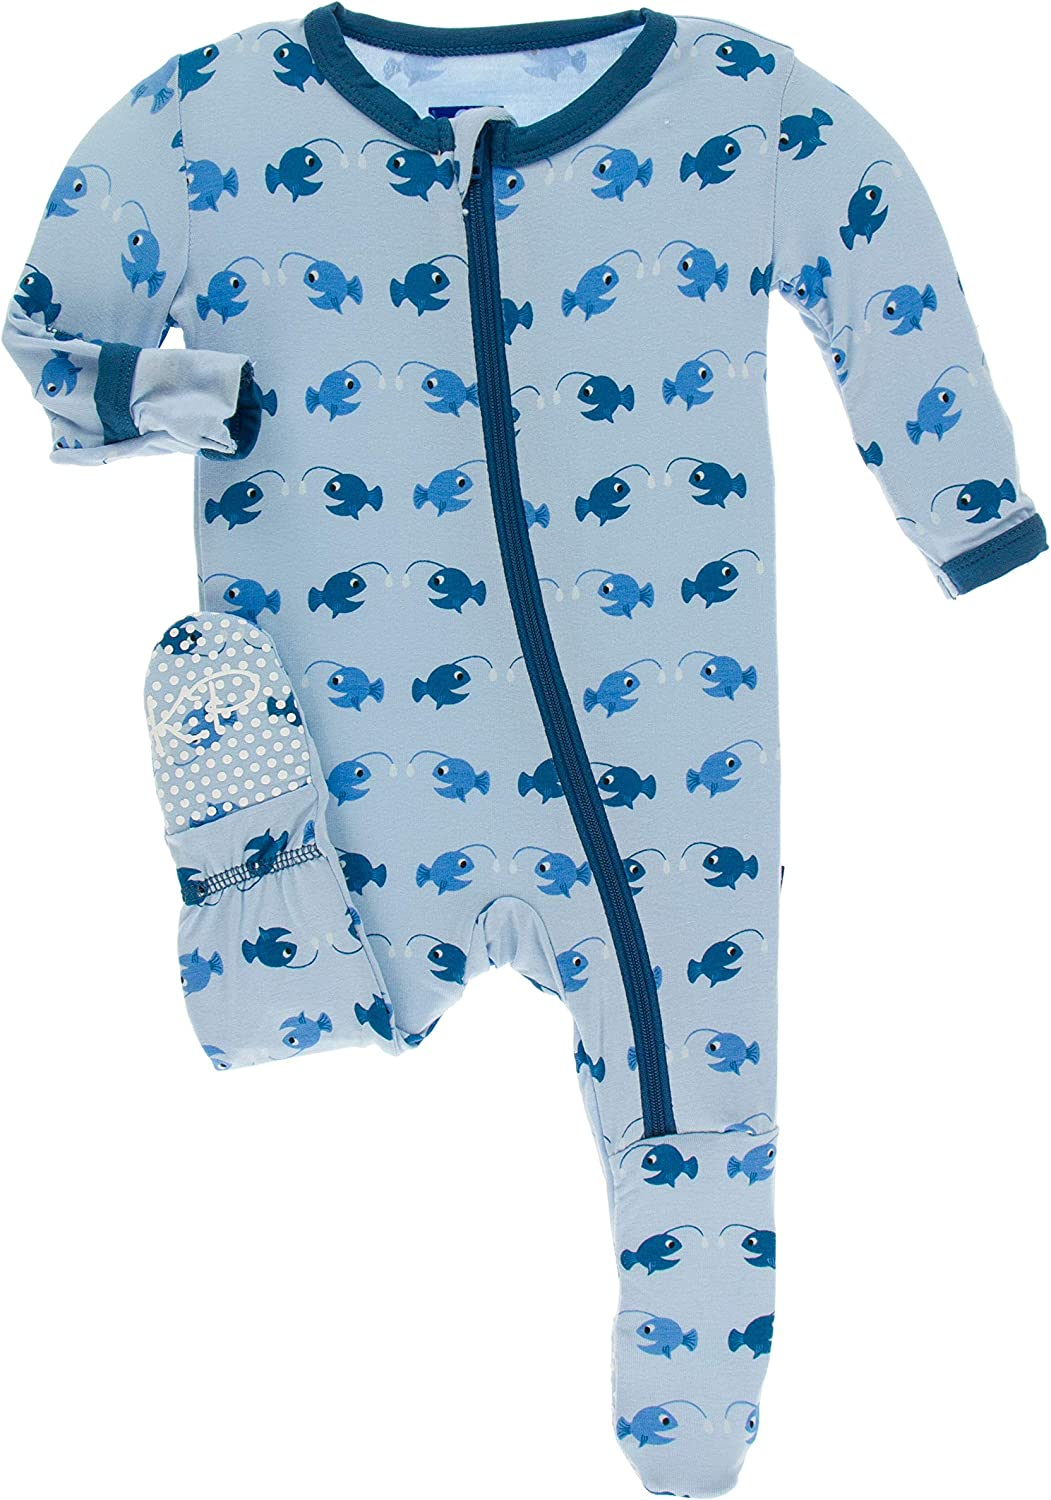 3-6 Months, Essentials Pond Elephant KicKee Pants Print Footie with Snaps